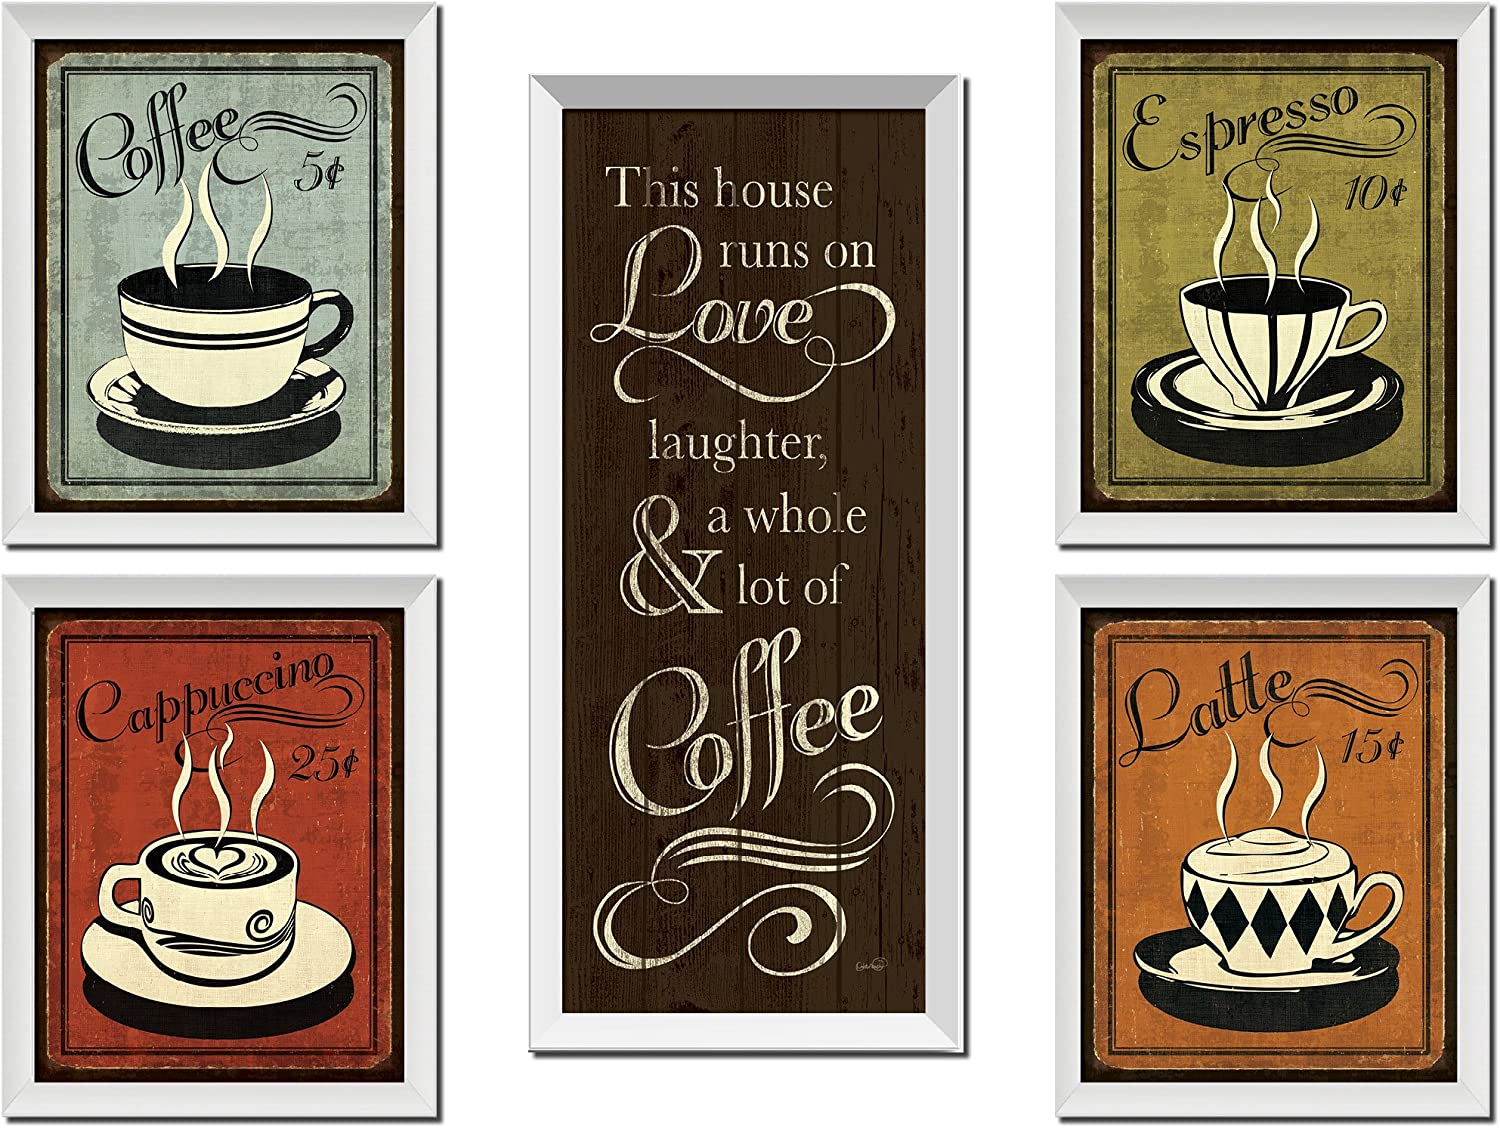 Amazon Com Classic Retro Coffee Espresso Cappuccino Latte And This House Runs On Love Laughter And A Whole Lot Of Coffee Set Four 8x10 Inch And One 8x18in White Framed Fine Art Prints Ready